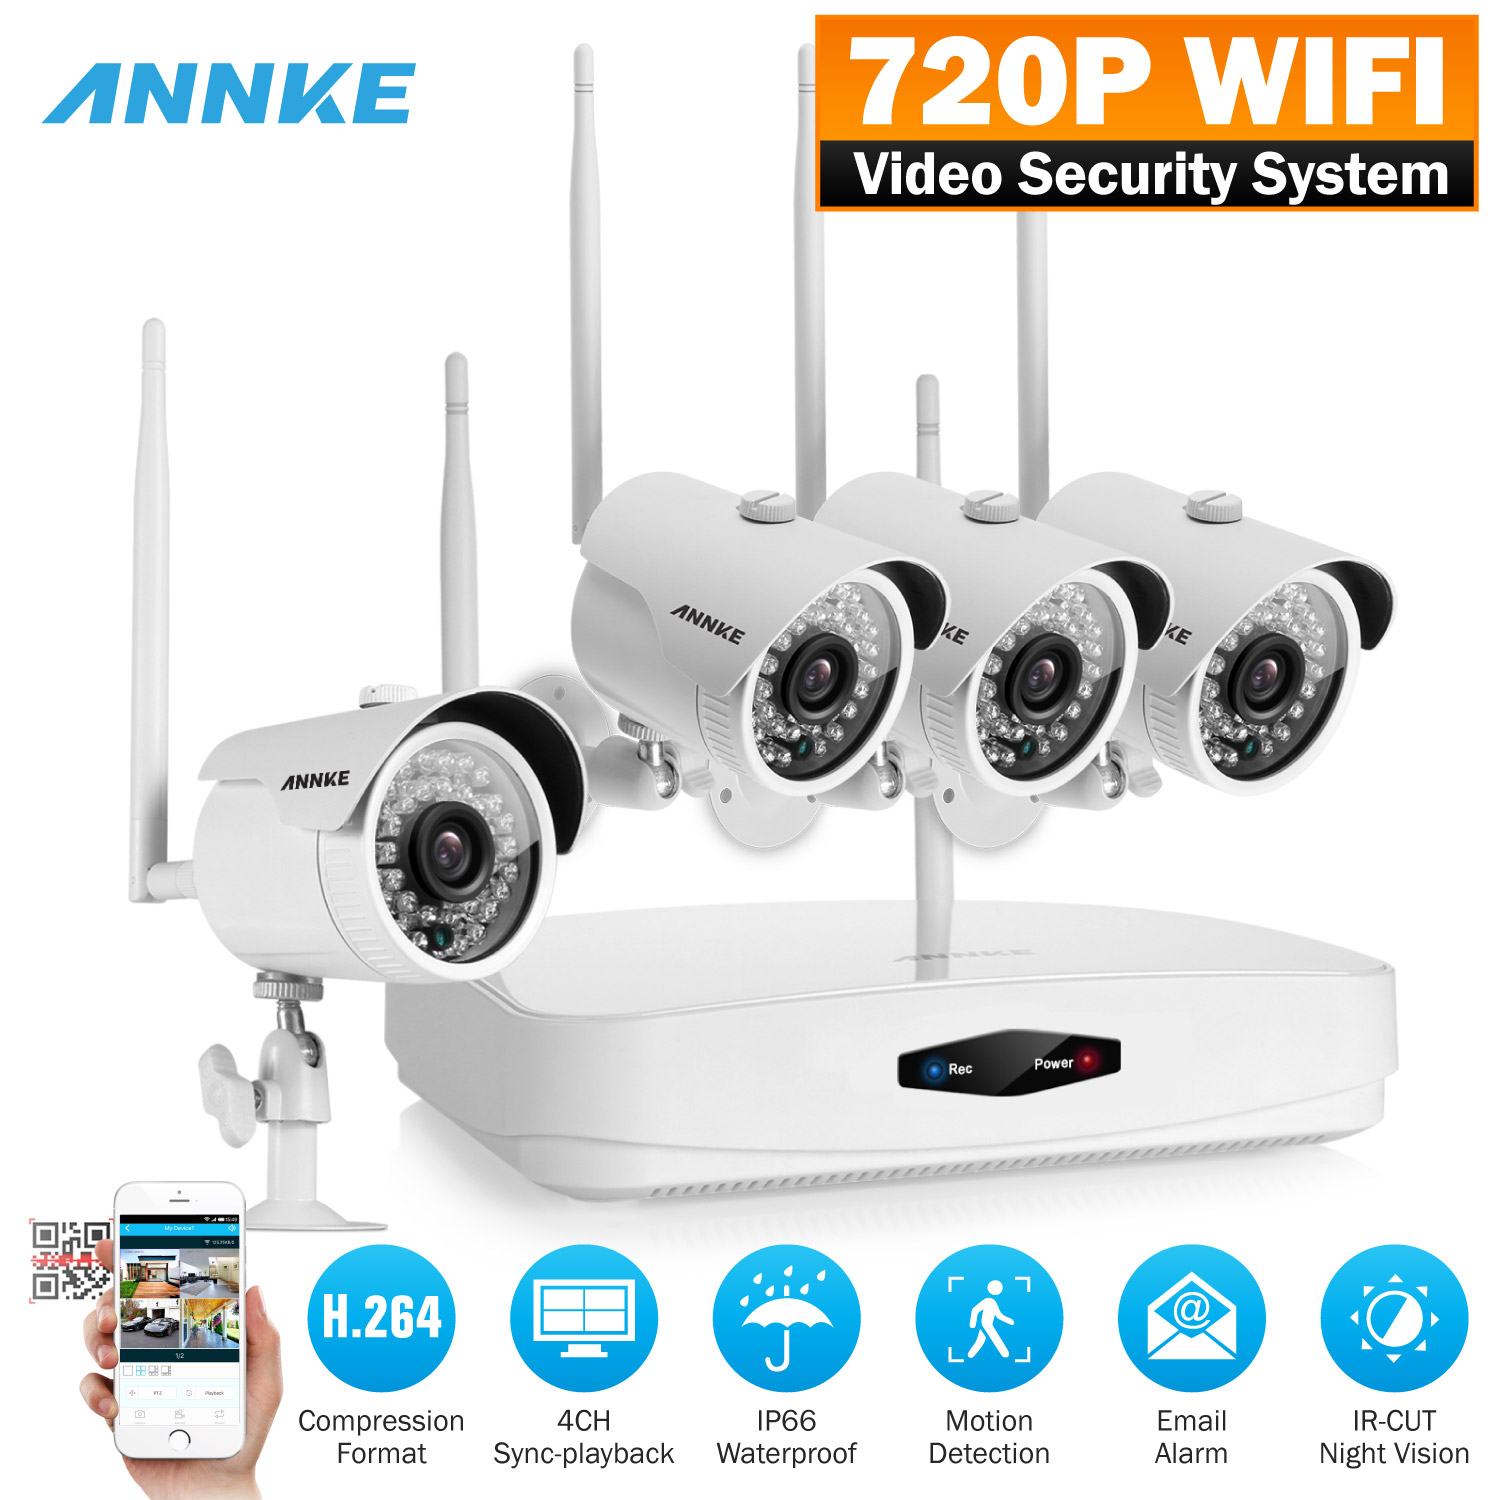 Annke 720p HD Wireless NVR System and (4) 1.0 Megapixel Surveillance IP Network Security Cameras with Super Night Vision, Motion Detetion and Remote Playback With No Hard Drive Disk